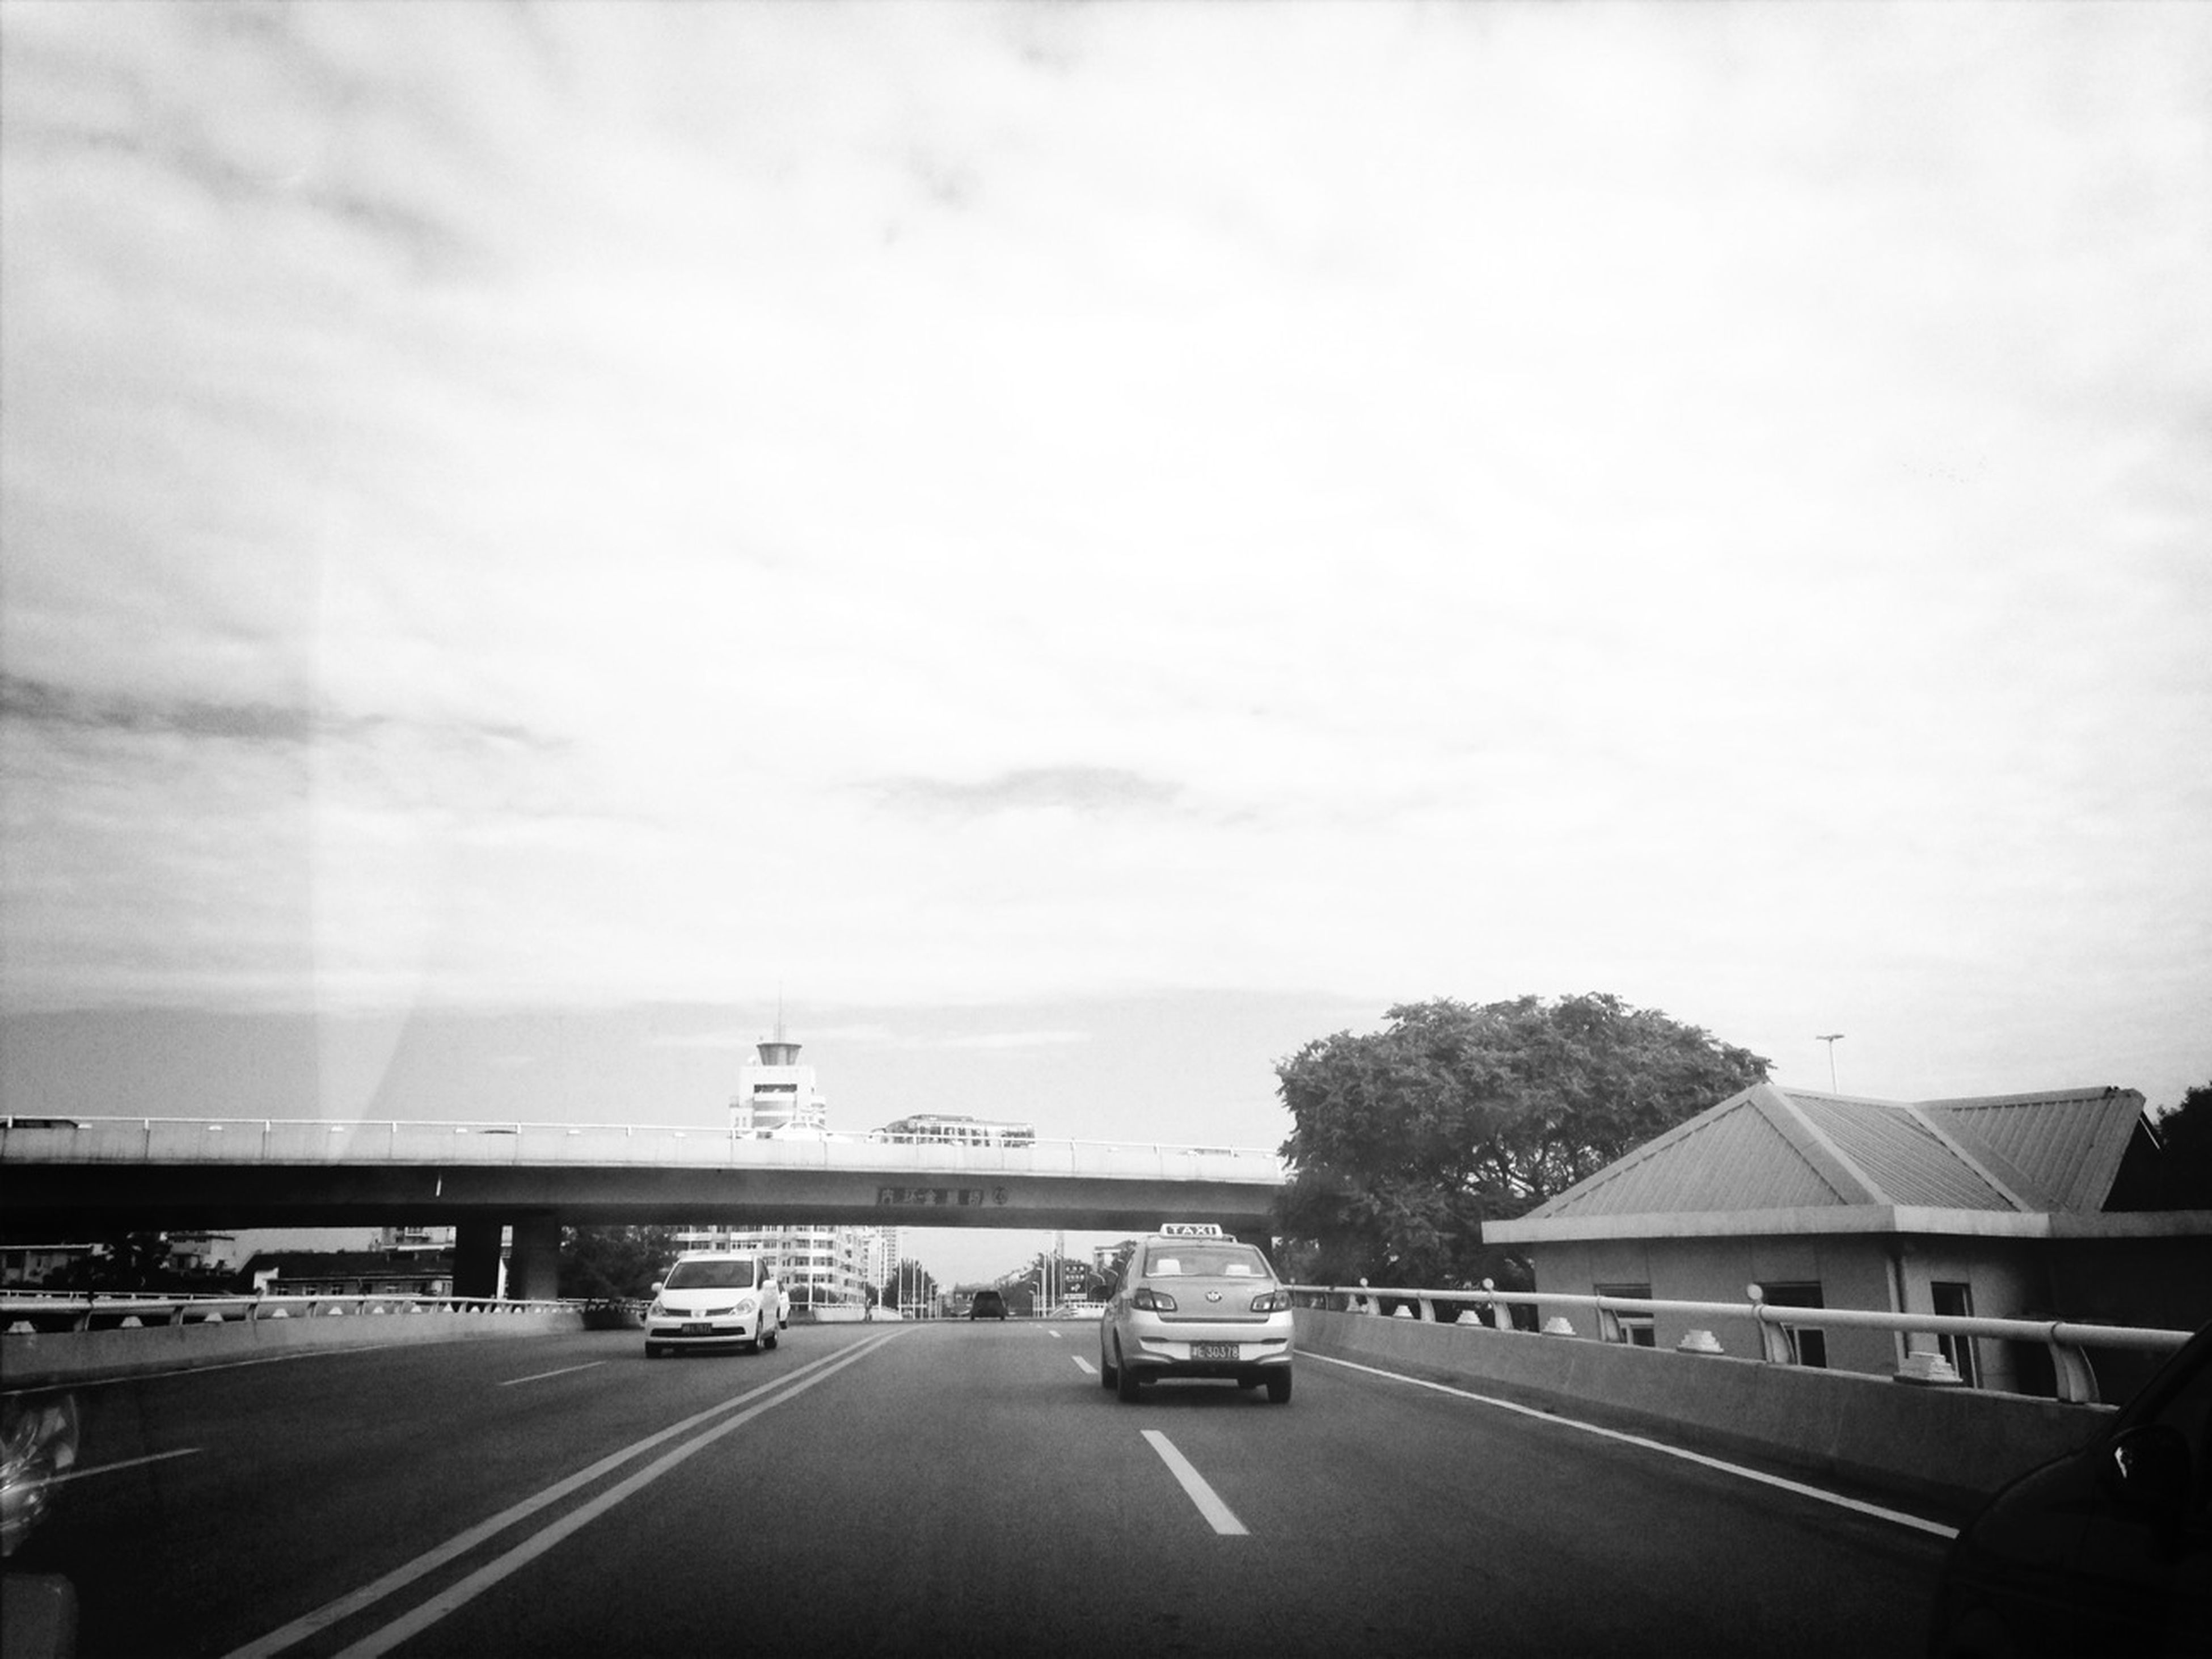 transportation, road, car, road marking, land vehicle, mode of transport, the way forward, sky, street, highway, cloud - sky, on the move, built structure, architecture, diminishing perspective, vanishing point, outdoors, travel, day, no people